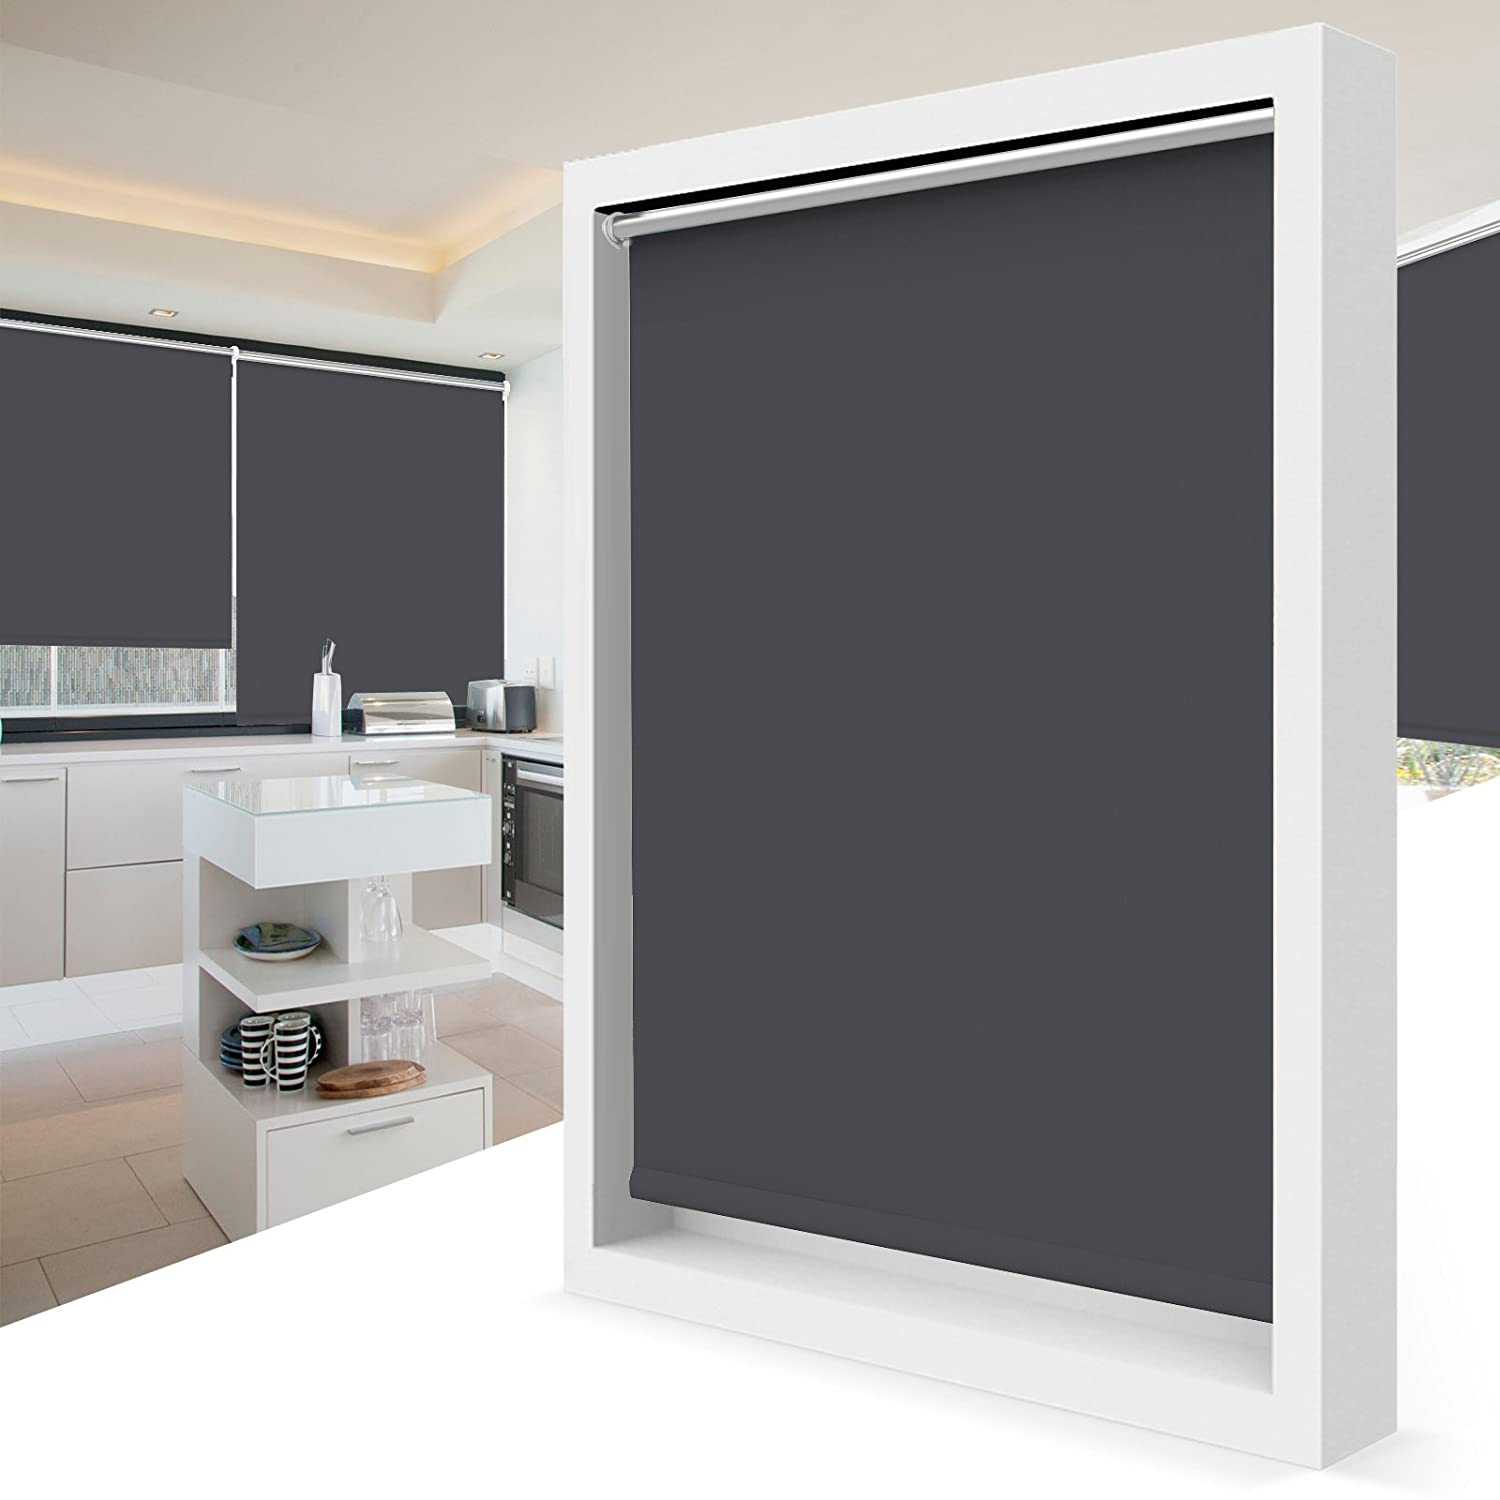 BelleMax 100% Blackout Roller Blind Thermal Trimmable Fabric and Easy Install With No Drilling - Cream 45 x 160 cm